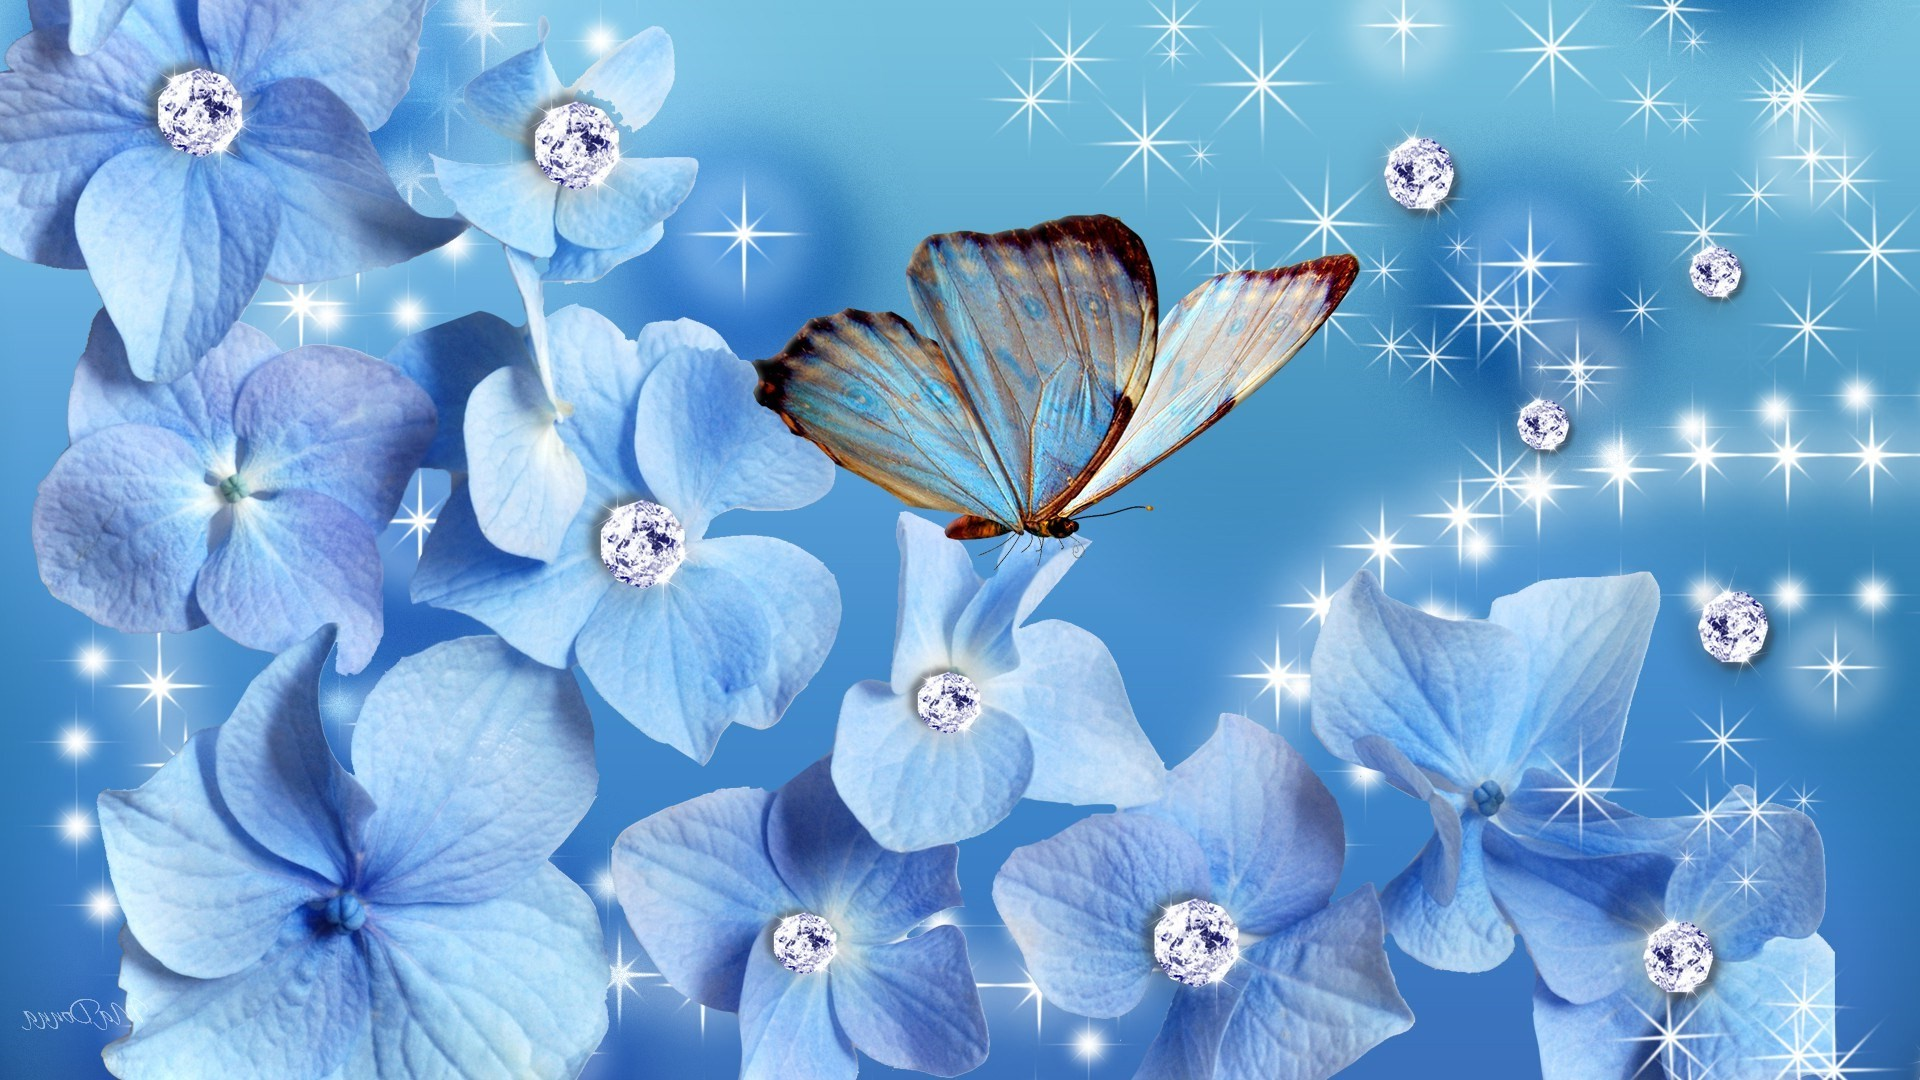 Res: 1920x1080, 3d abstract butterfly wallpapers blue